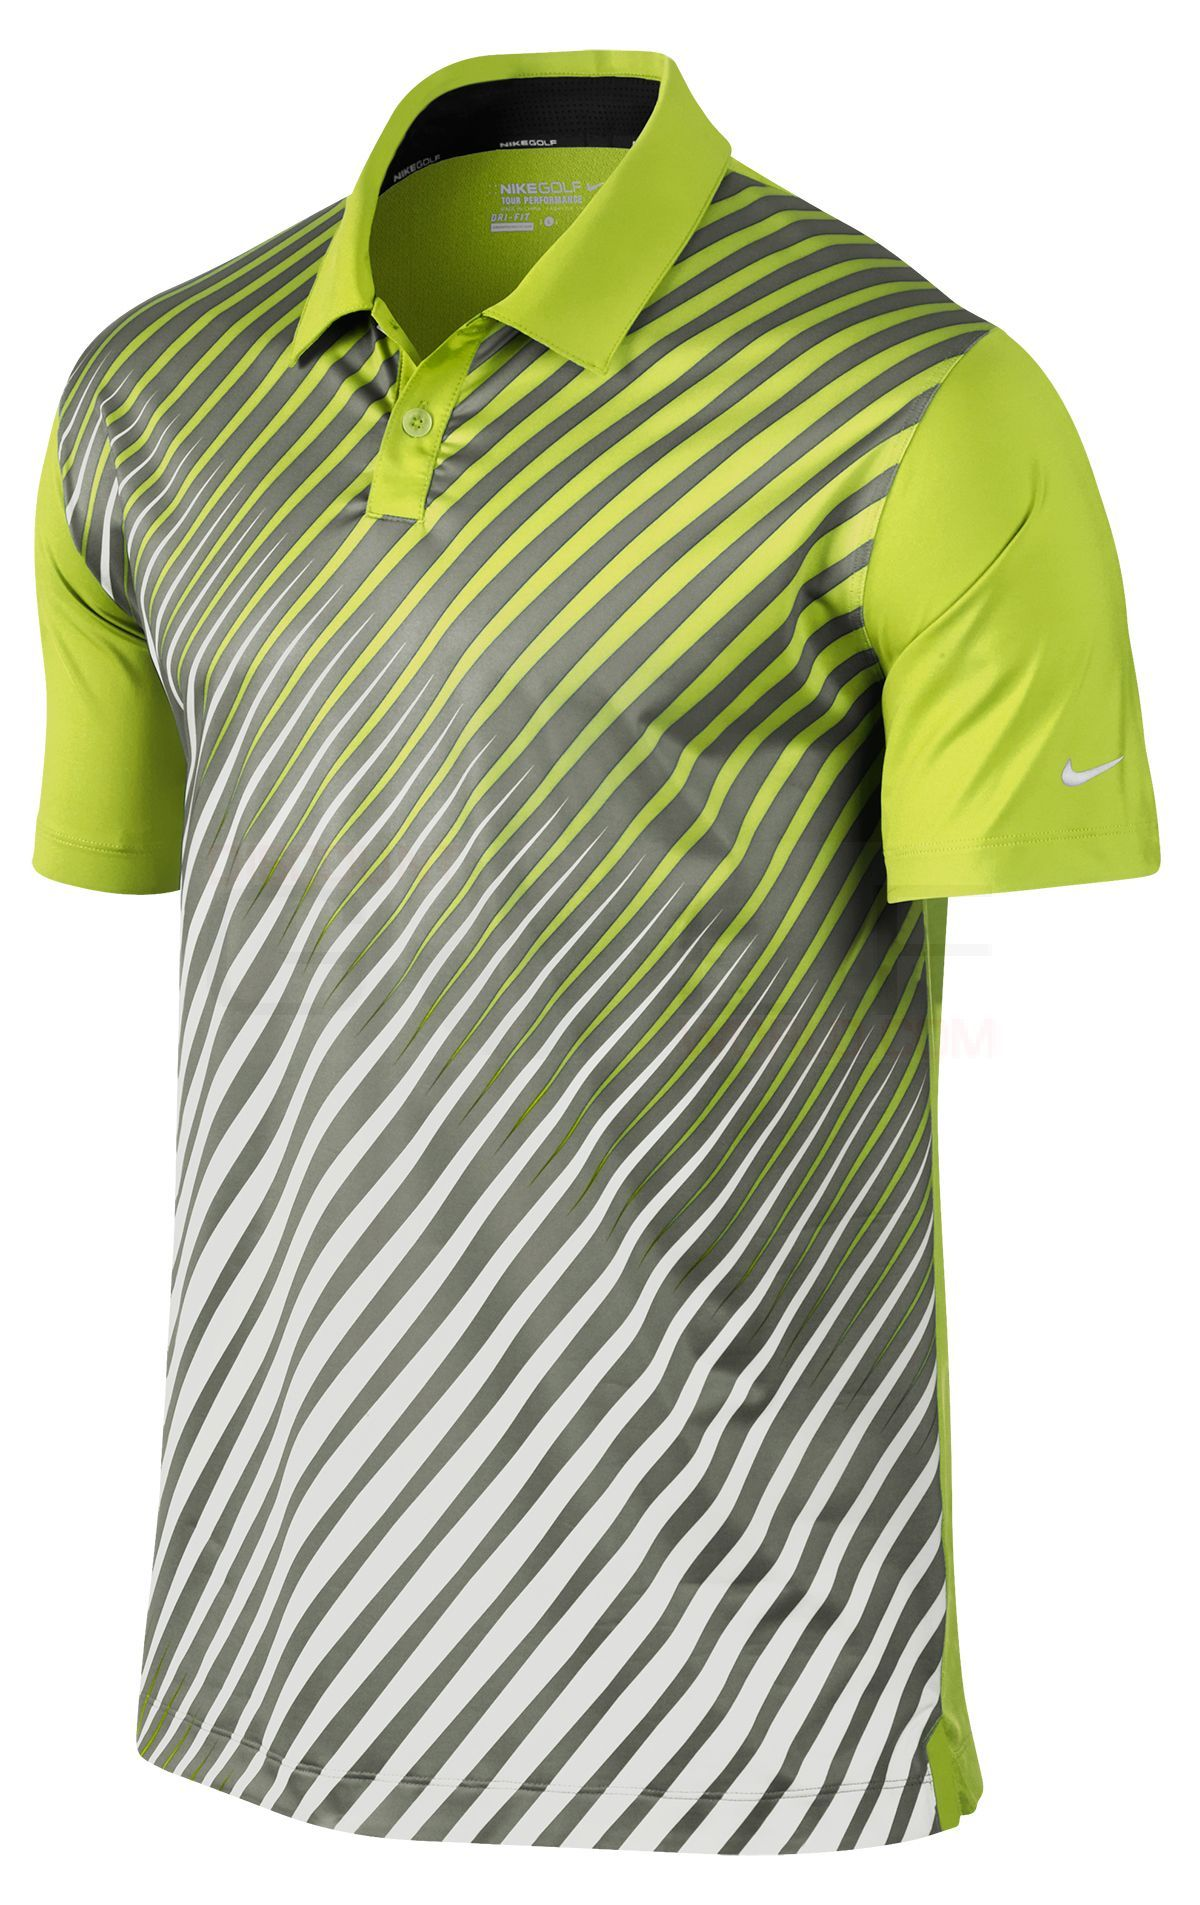 nike innovation graphic polo - Google Search | Golf Shirts ...